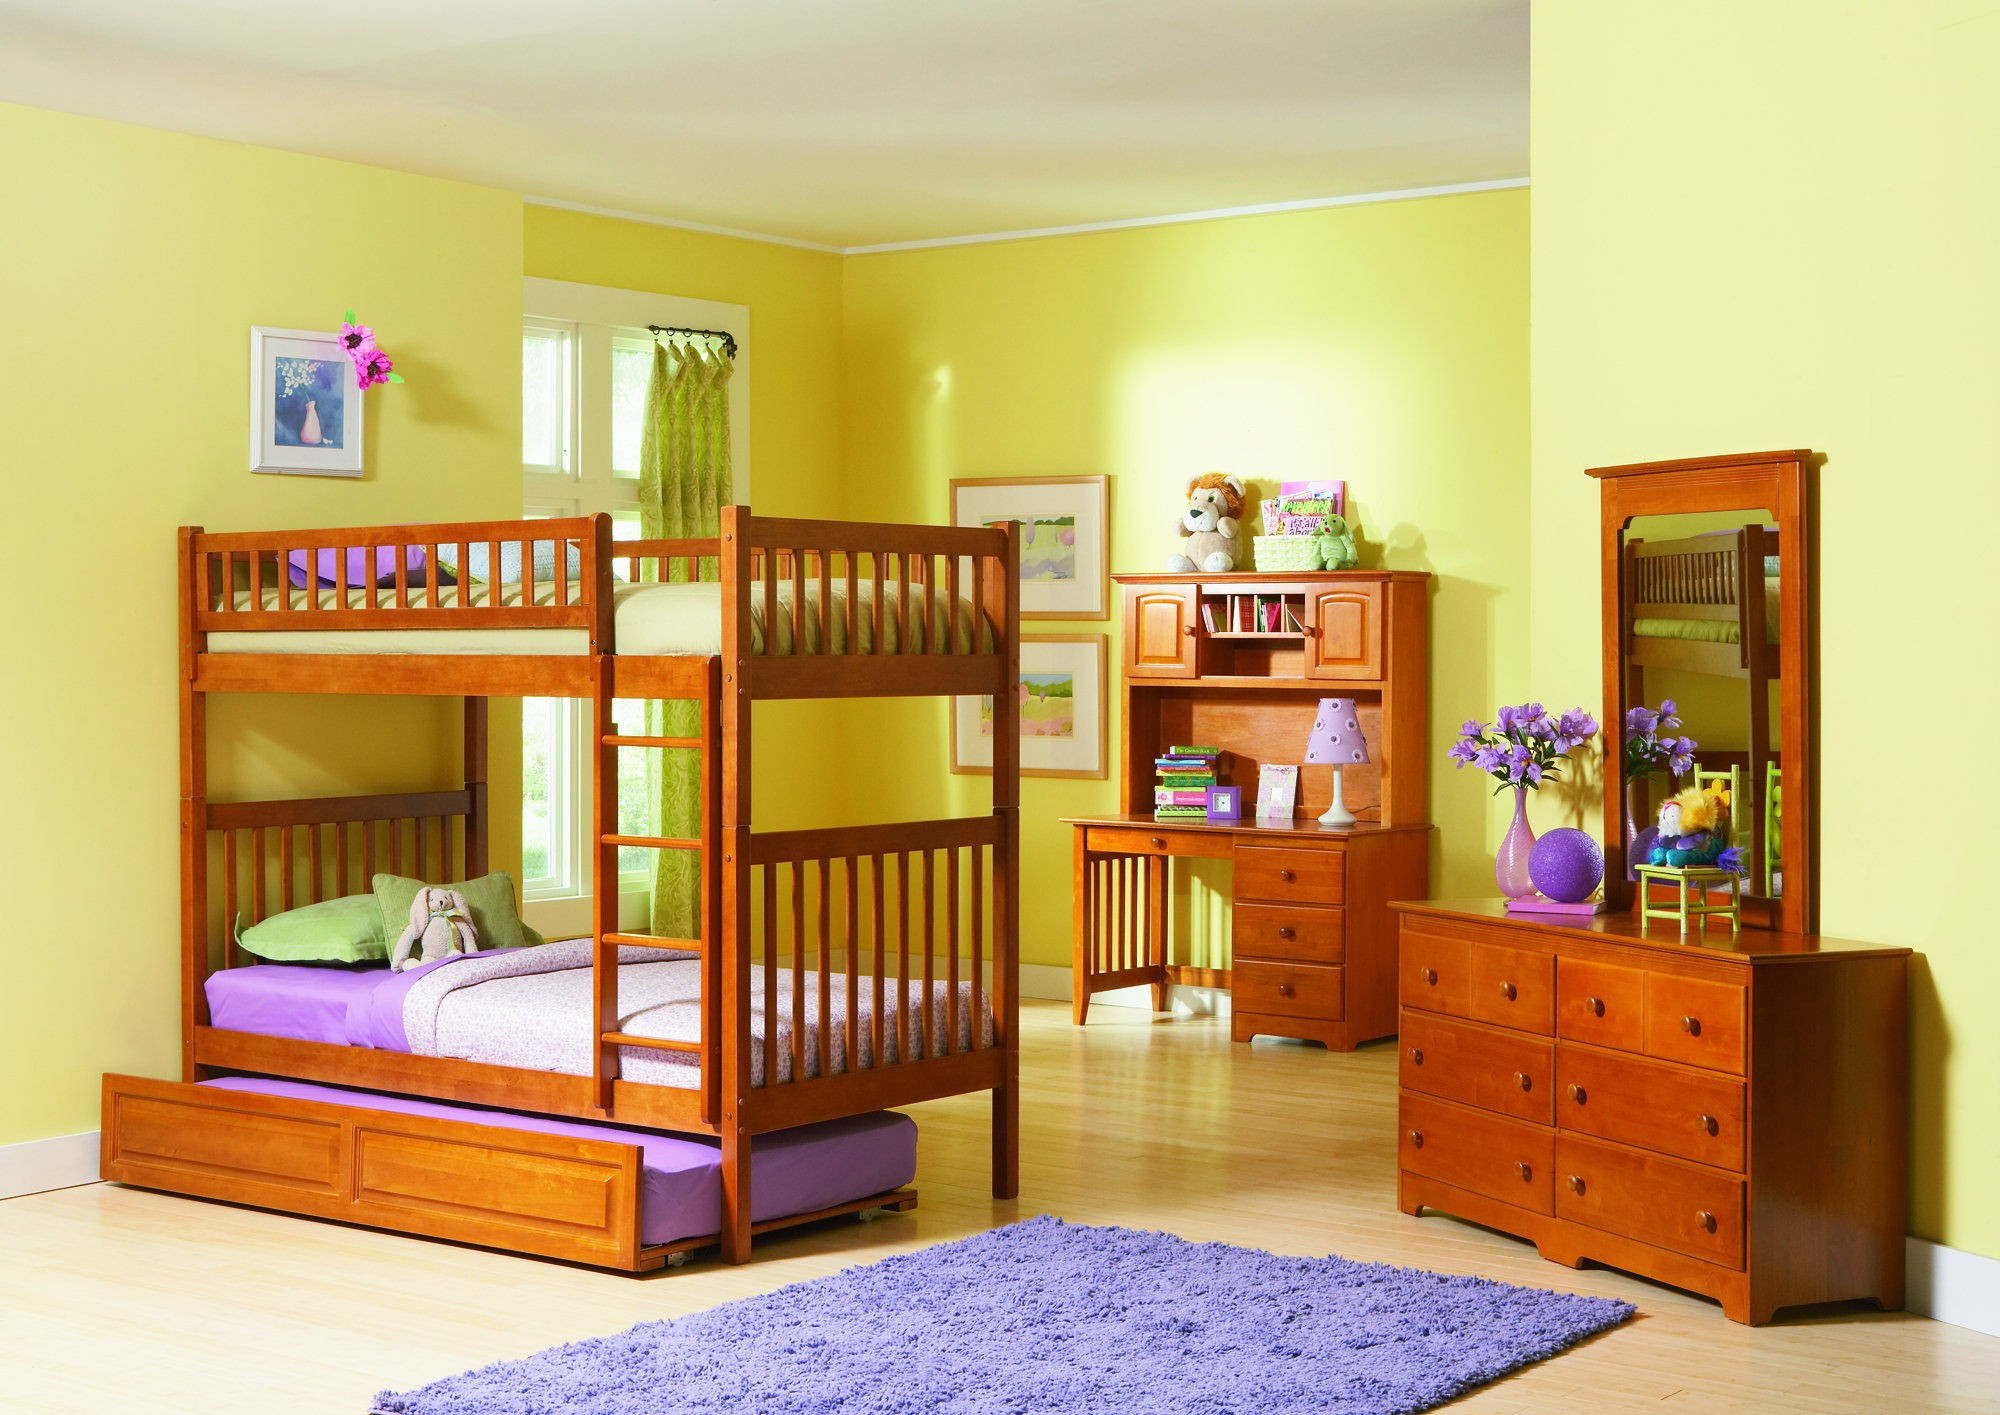 Best ideas about Kids Room Set . Save or Pin Bedroom amazing cheap childrens bedroom sets Kids Bedroom Now.